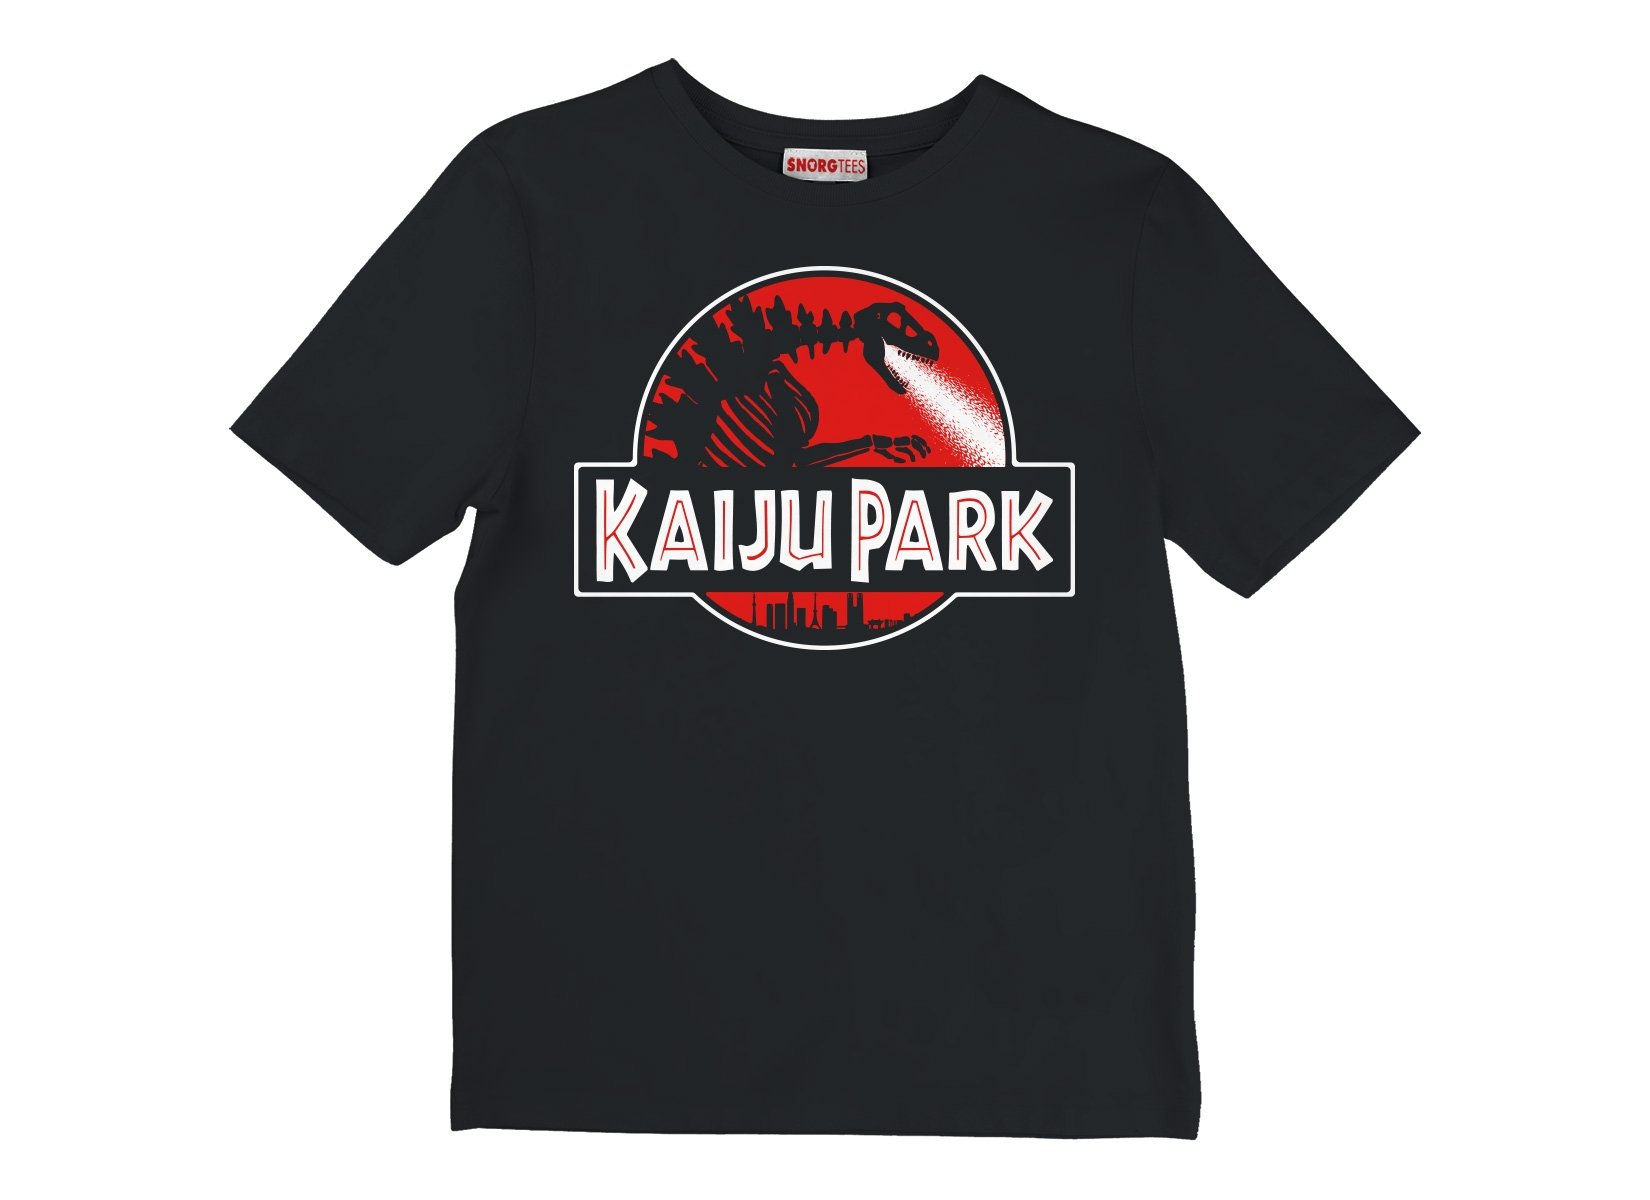 Kaiju Park on Kids T-Shirt